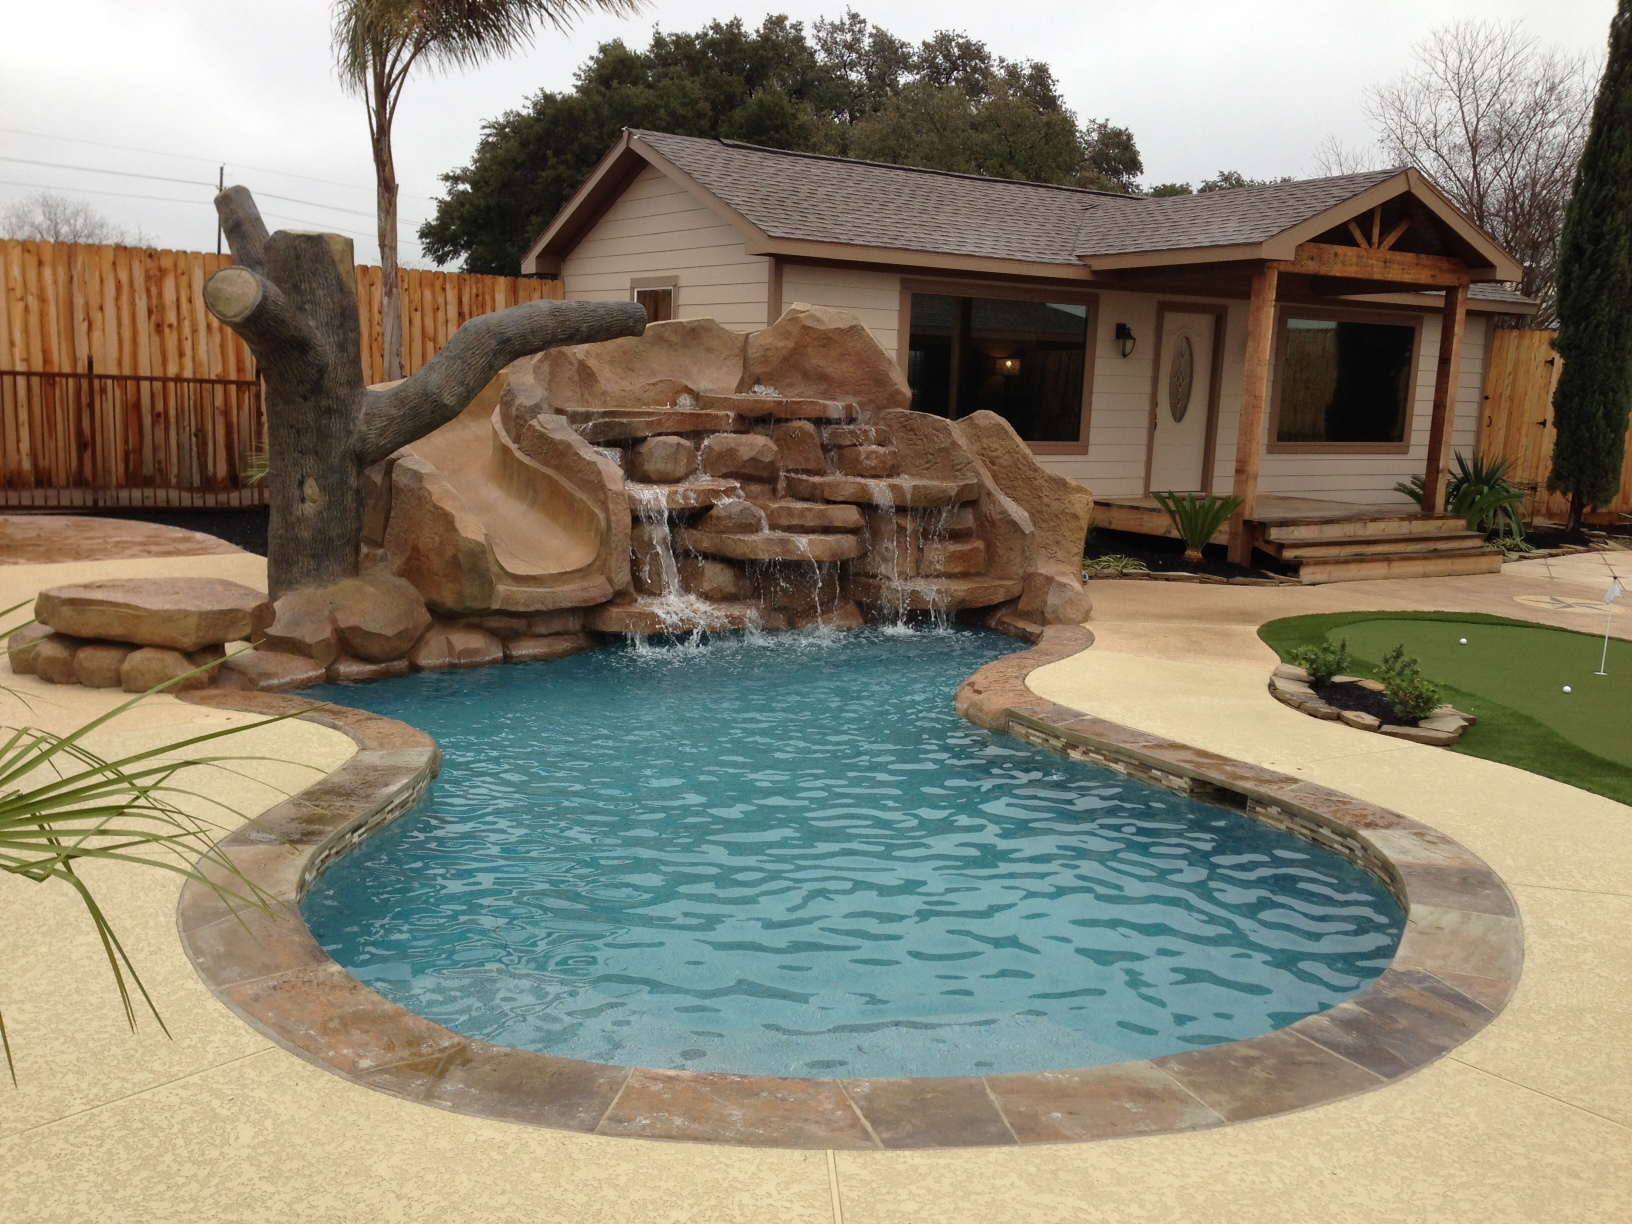 Average Cost Of Inground Swimming Pool | Pictures Of Inground Pools | Backyard Pool Designs